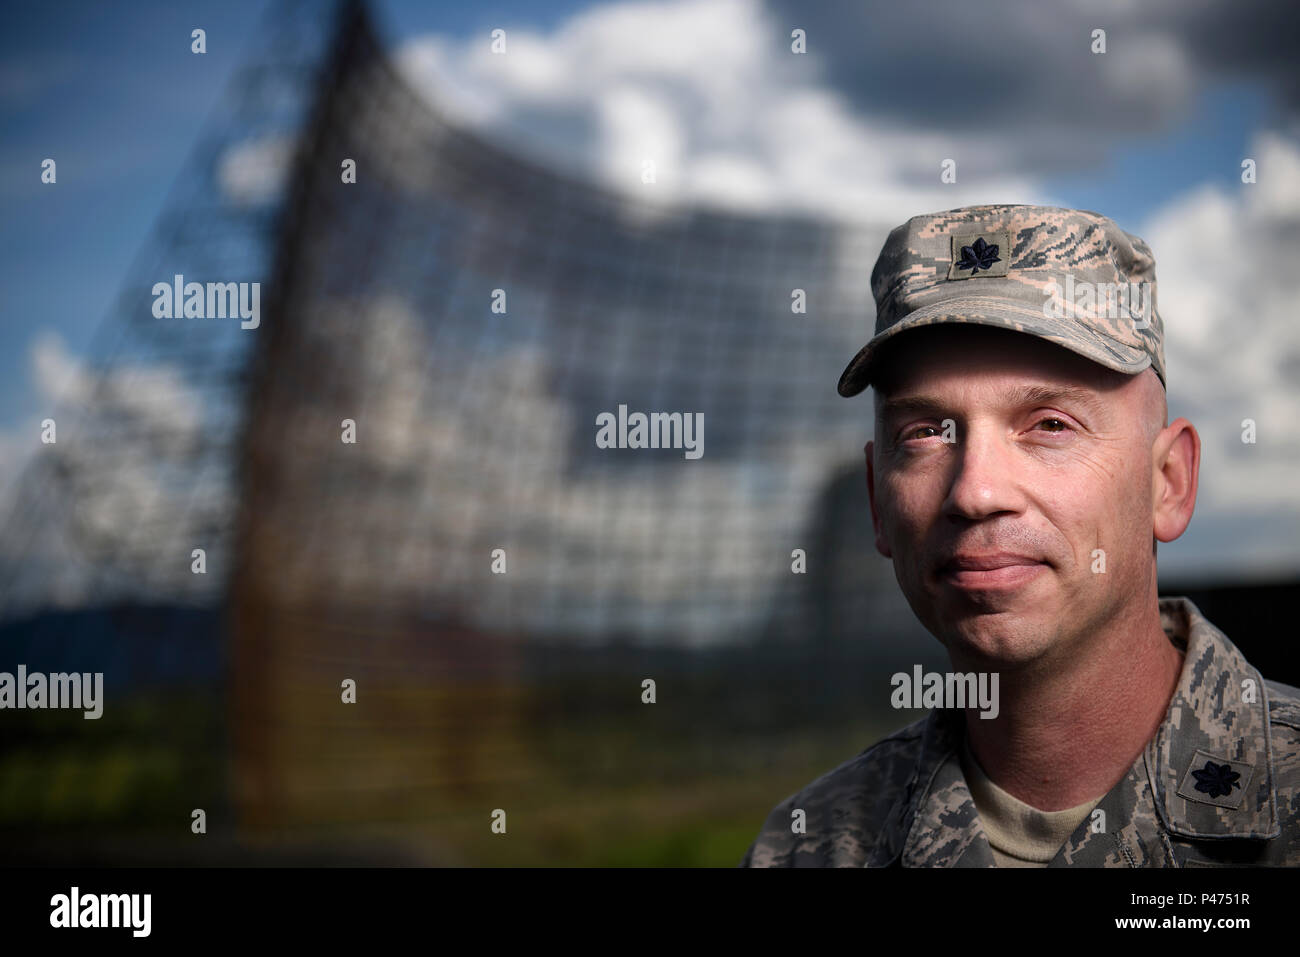 Lt. Col. Jason Budnick is the installation commander at Clear Air Force Station, Alaska. The base was created as the Cold War began--tasked with the mission of detecting potential nuclear missiles launched by the Soviet Union. (Photos/Tech. Sgt. David Salanitri) - Stock Image